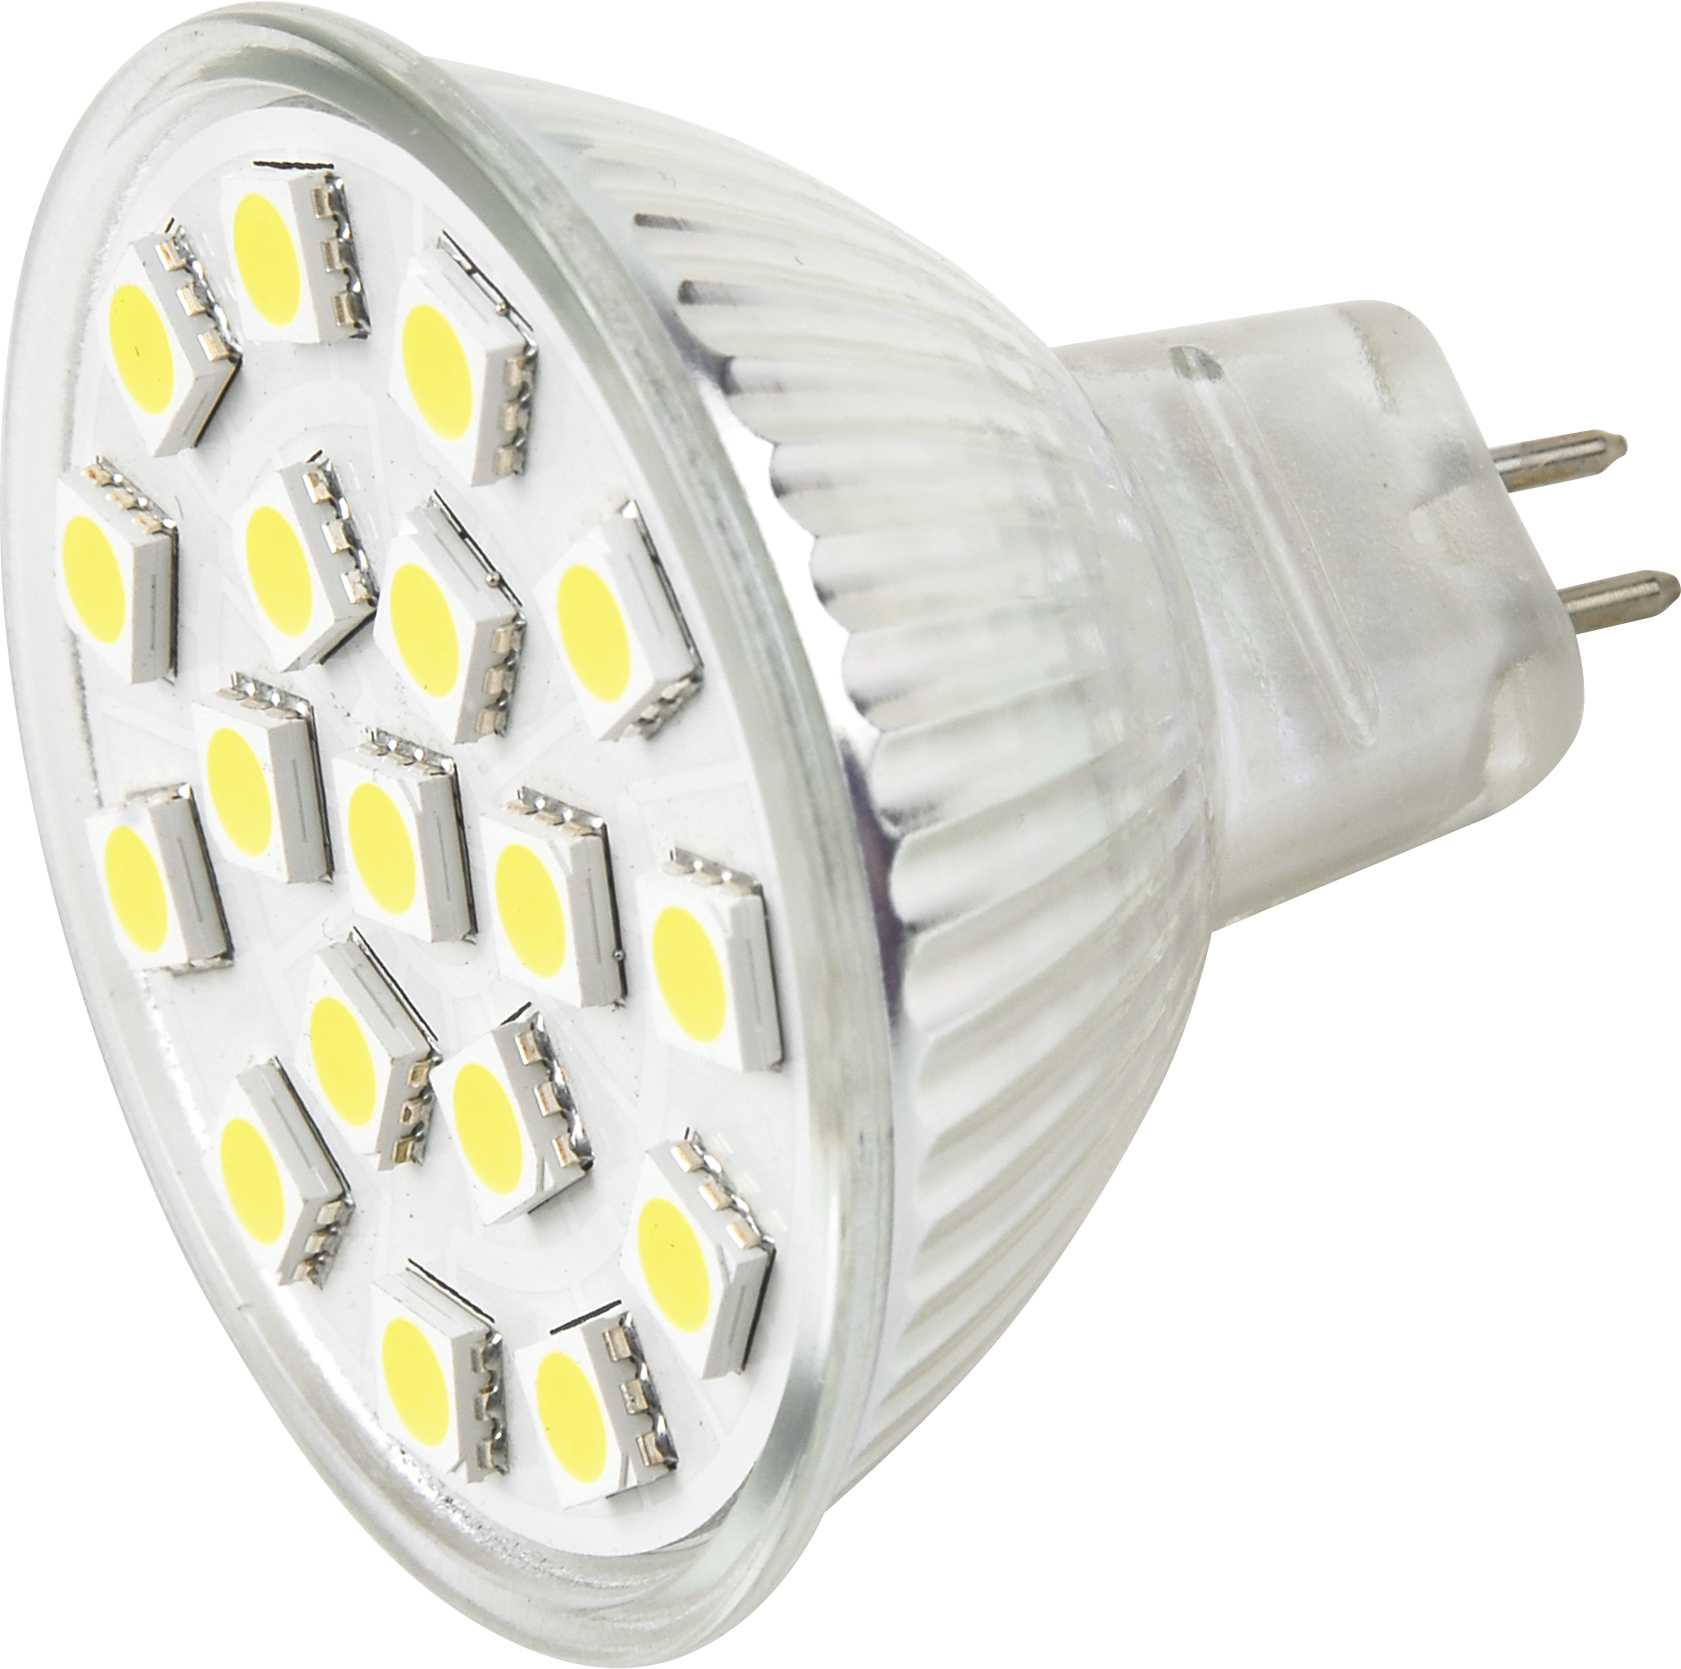 Led bulb mr16 smd the landscape guru a place to land for outdoor living Bulbs led